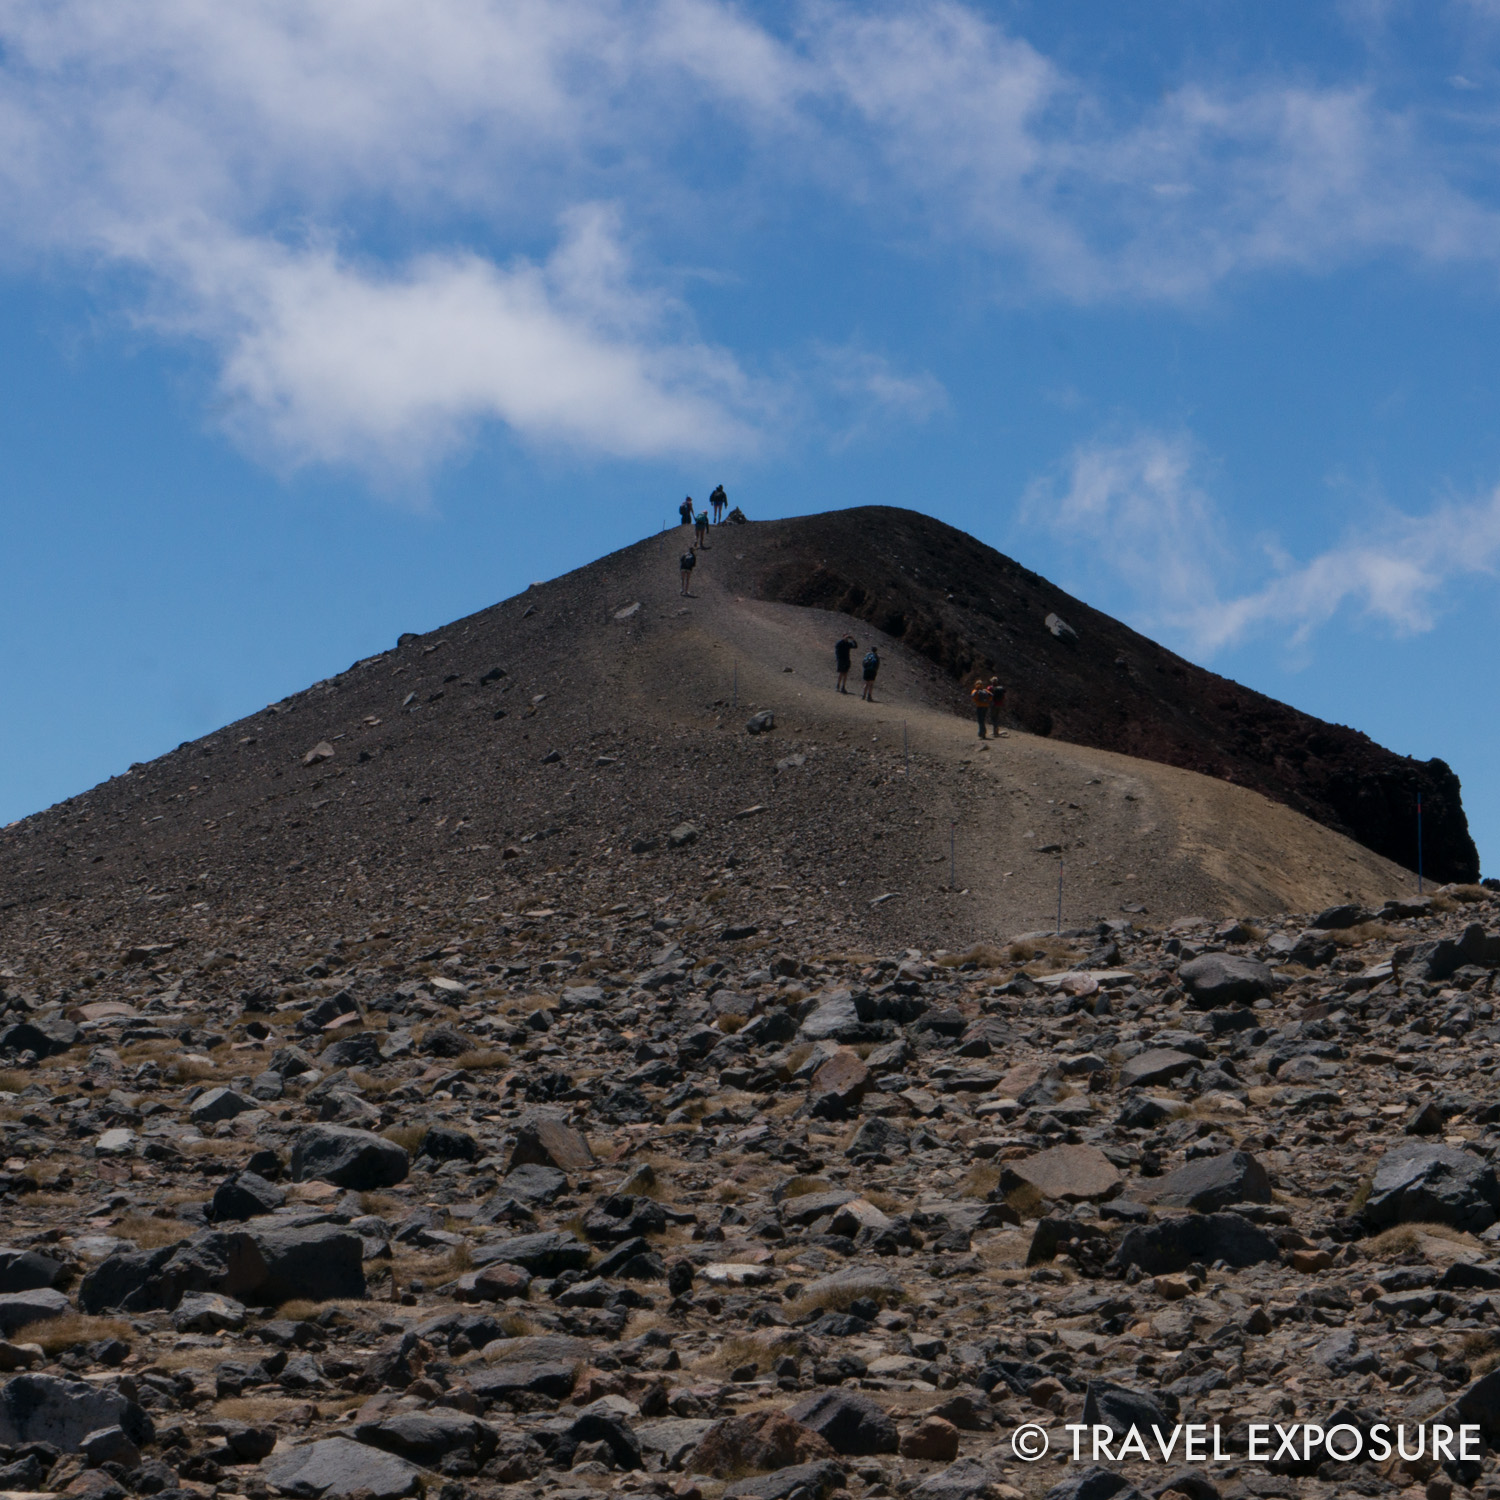 Tongariro Alpine Crossing Hike - almost to the very top here...